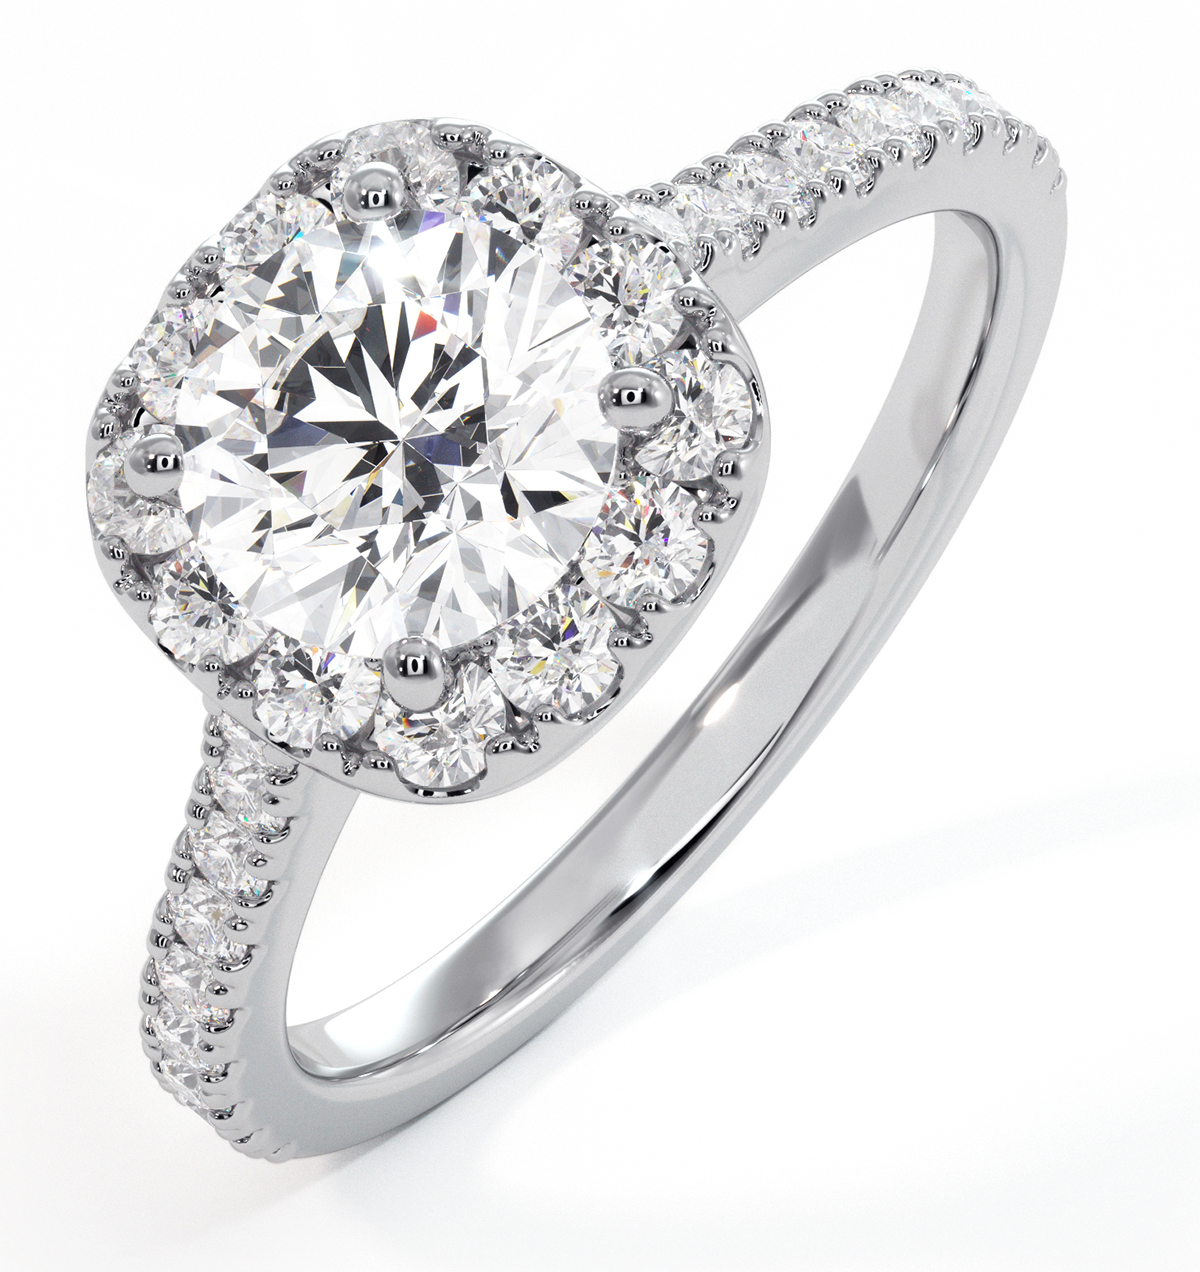 Elizabeth GIA Diamond Halo Engagement Ring 18K White Gold 1.50ct G/SI2 - image 1